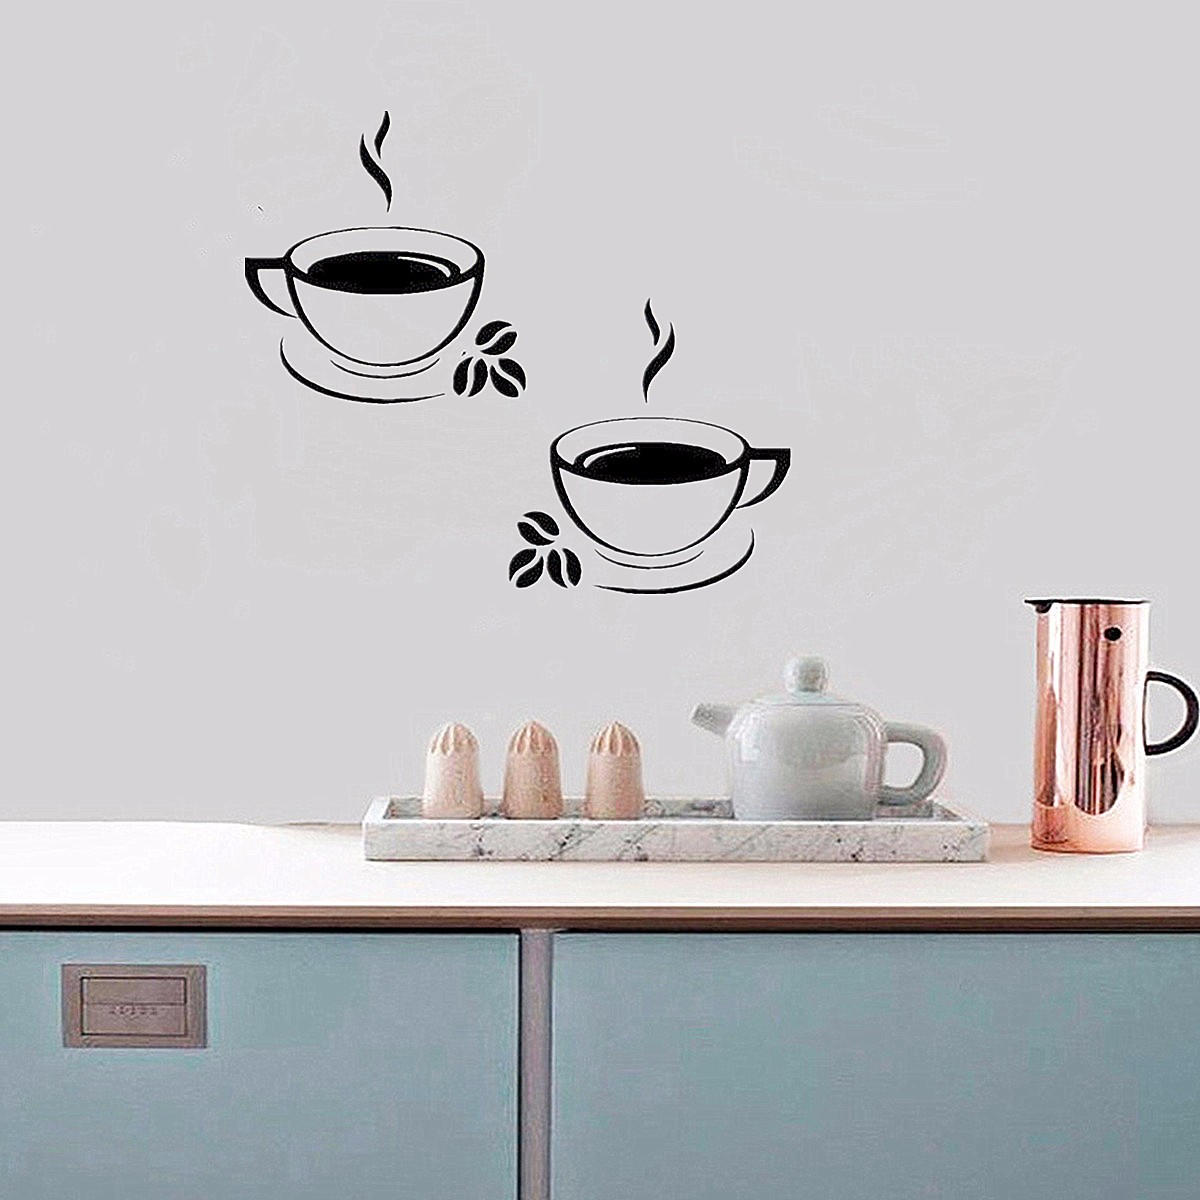 2pcs Coffee Cups Kitchen Wall Window Stickers Waterproof PVC Art Vinyl Decal Restaurant Pub Cafe Shop Peel and Stick Stickers Home Decor